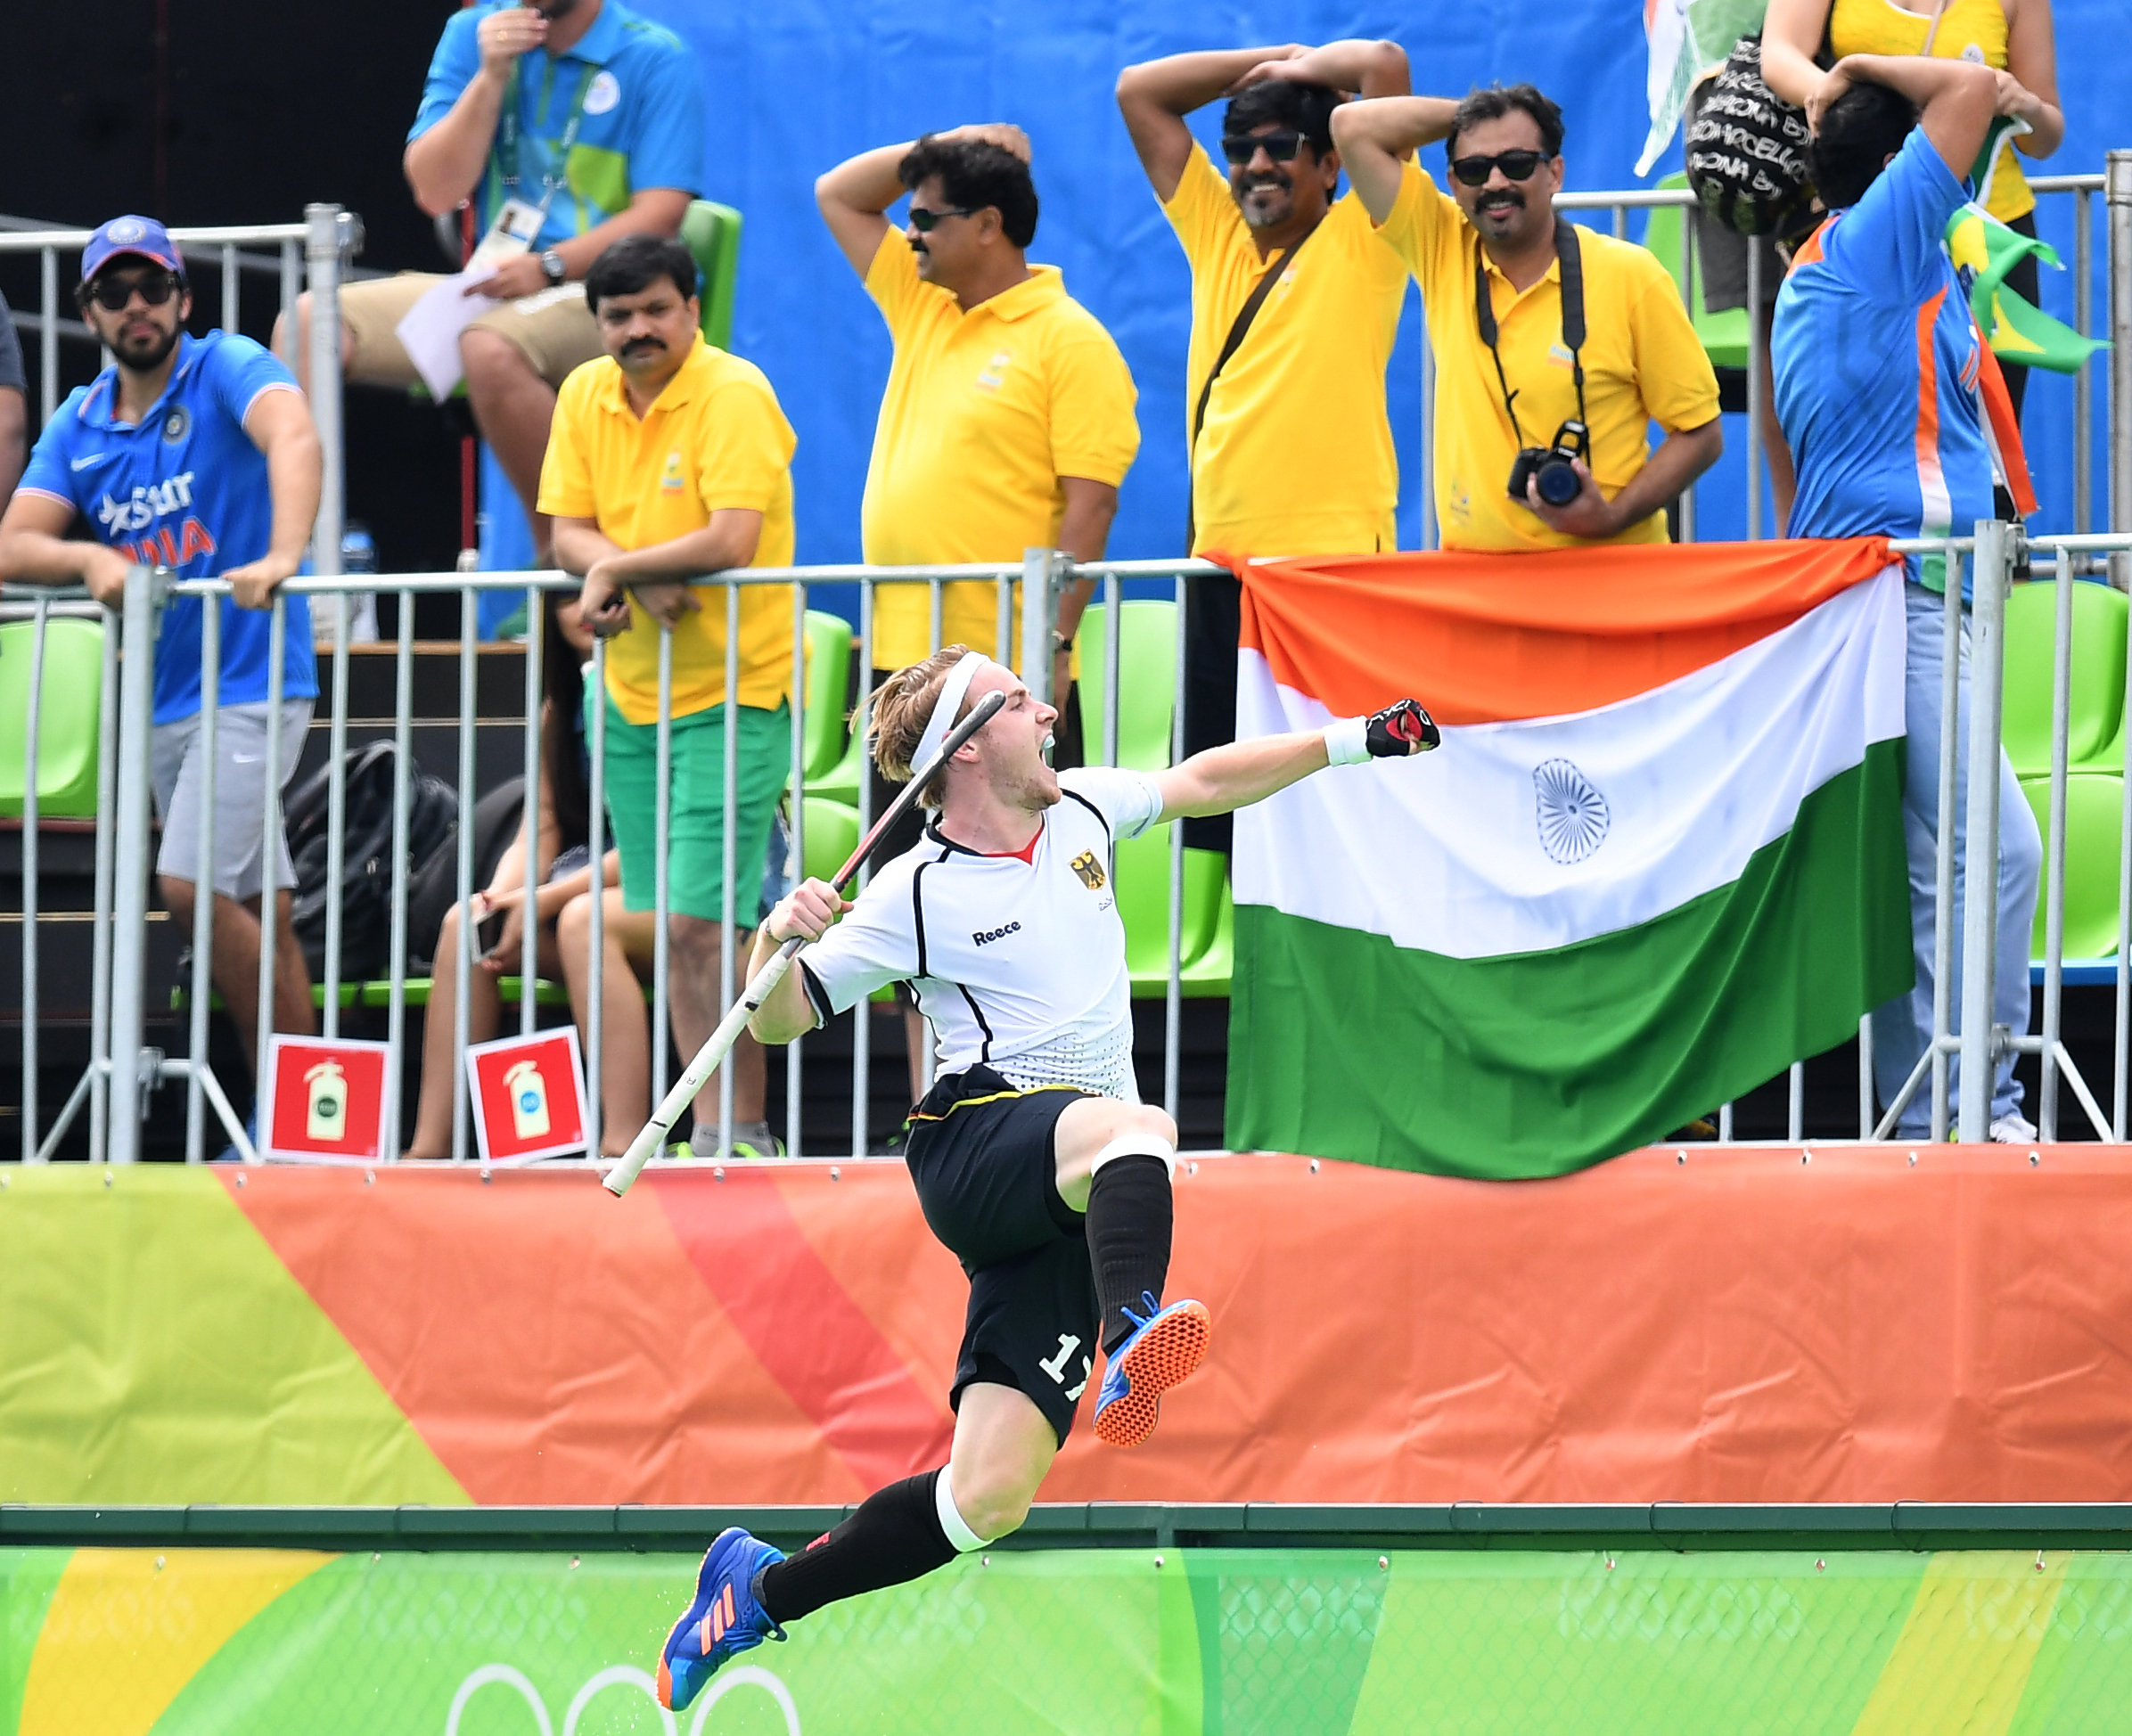 Germany's Christopher Ruhr celebrates scoring a goal during the men's field hockey Germany vs India match of the Rio 2016 Olympics Games at the Olympic Hockey Centre in Rio de Janeiro on August, 8 2016. / AFP PHOTO / MANAN VATSYAYANA